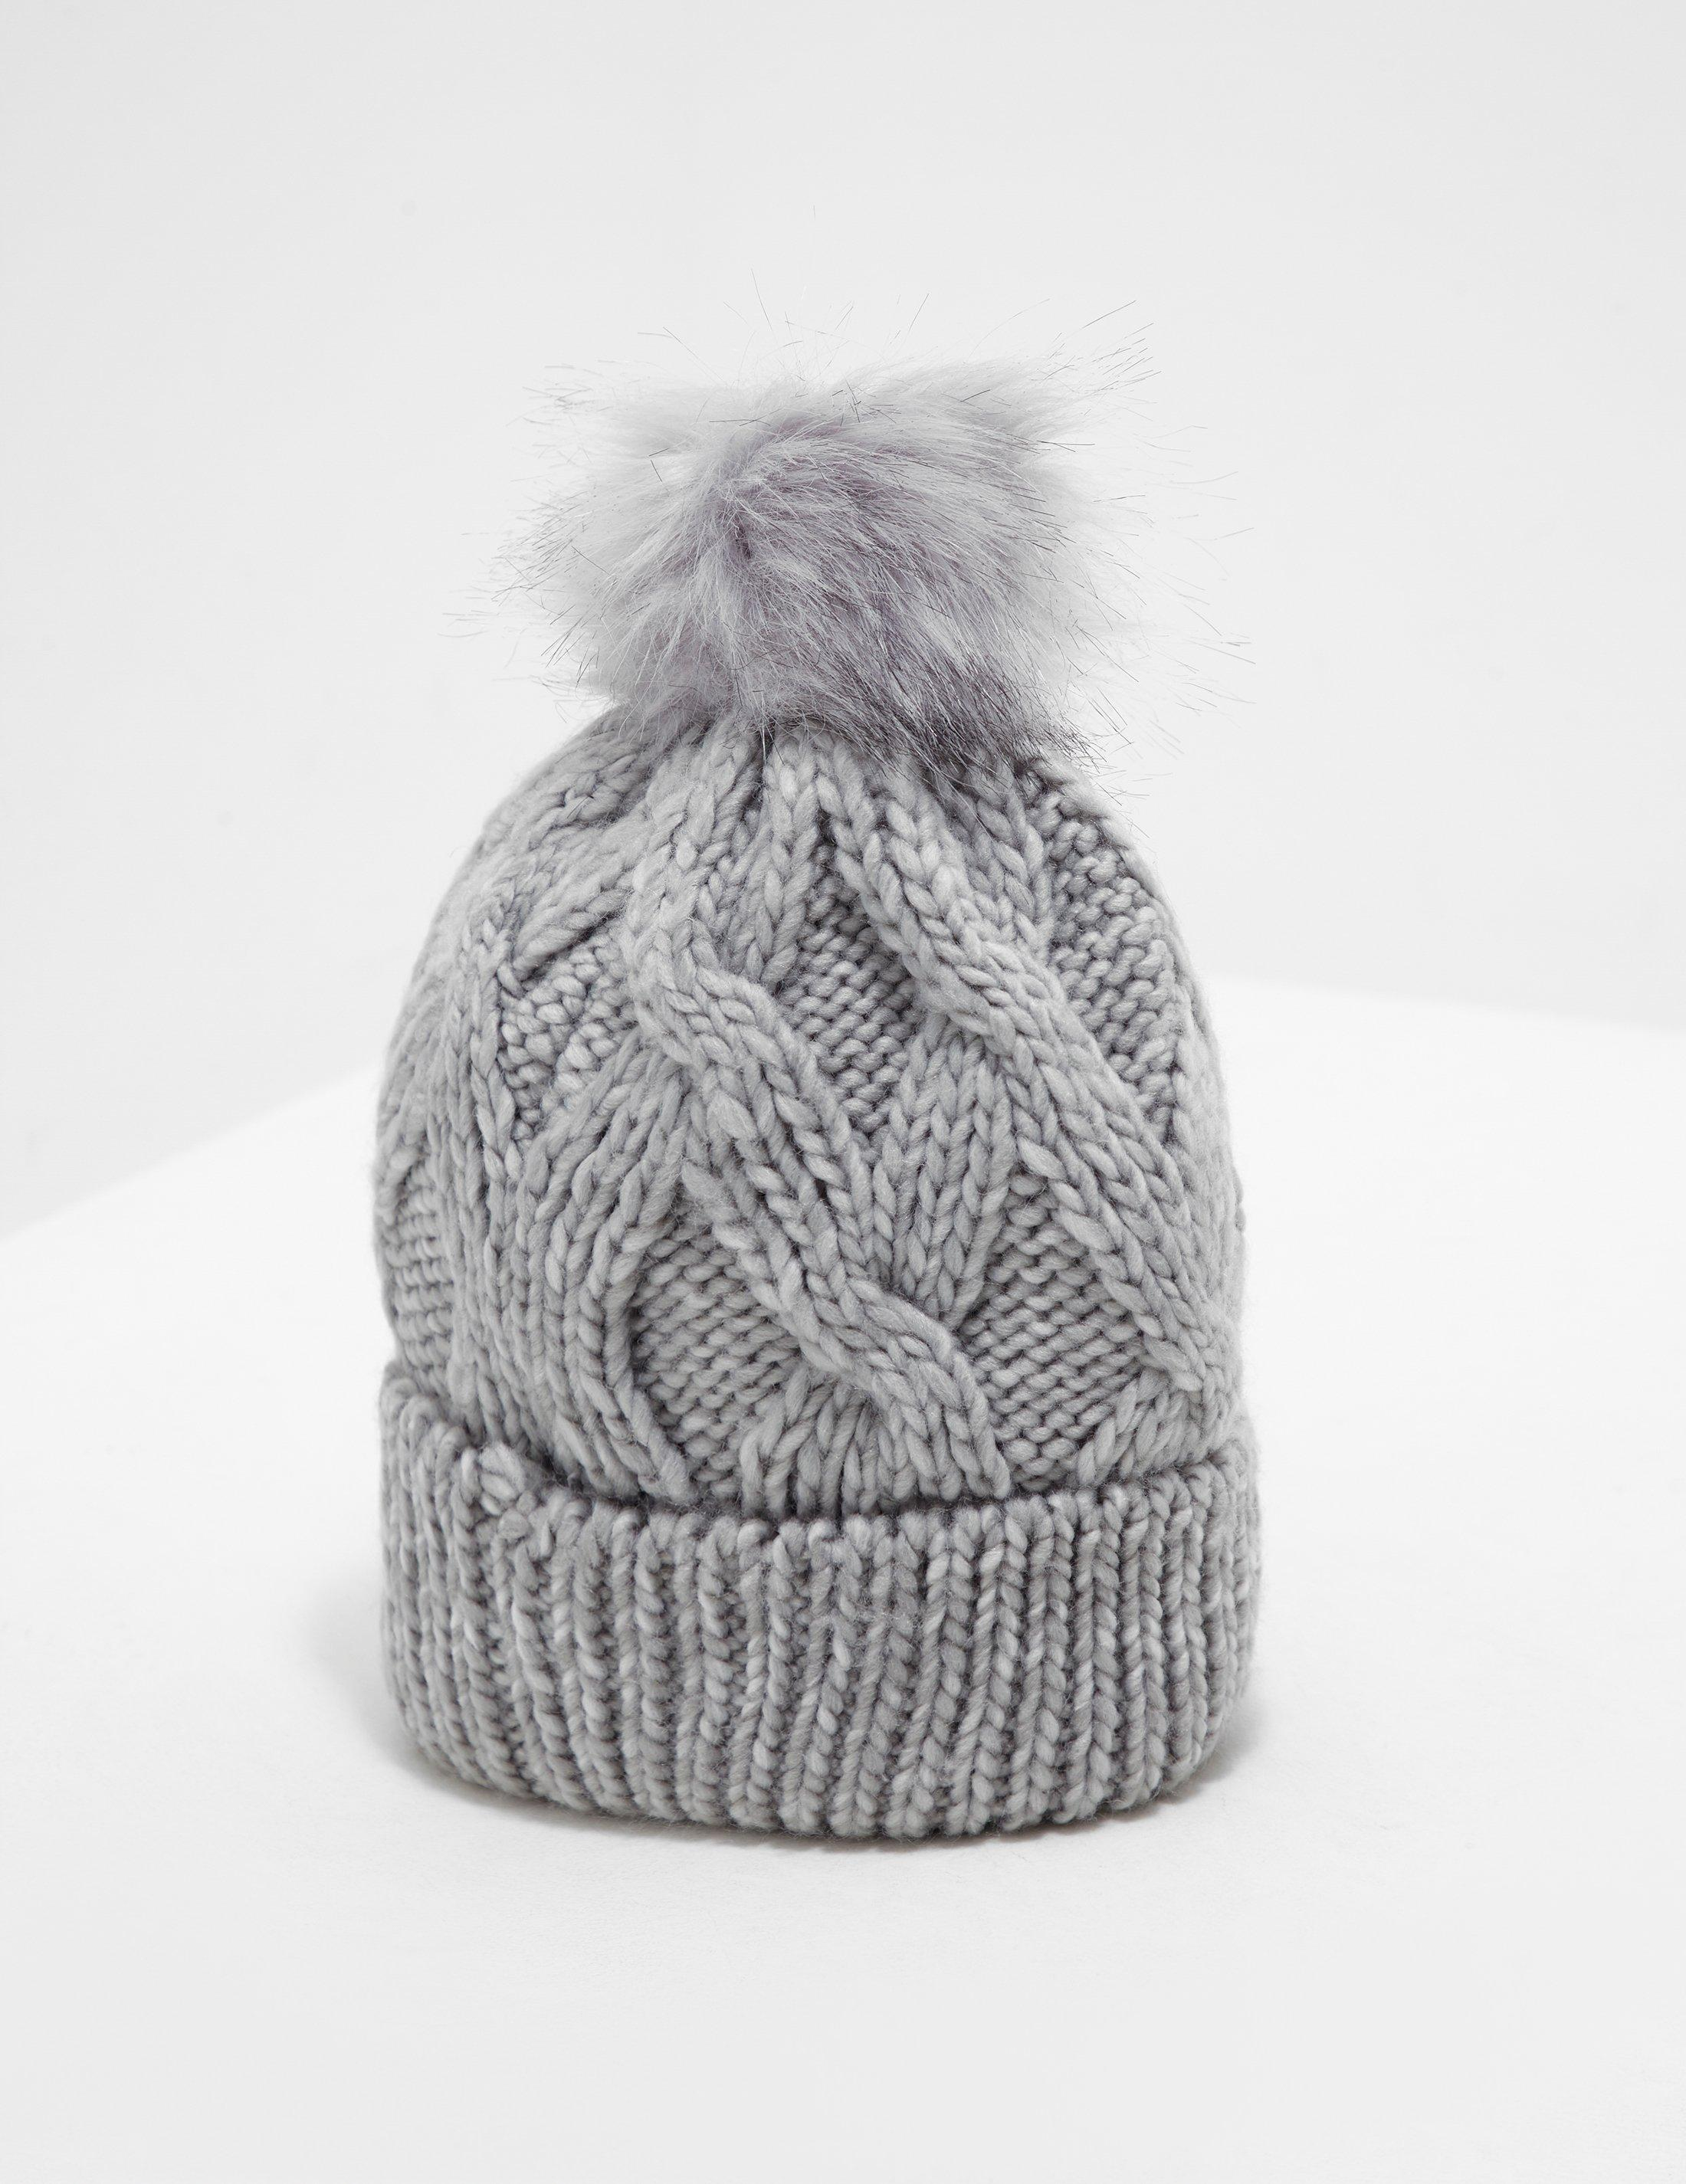 5ed6aebe266 Barbour Bridport Pom Beanie in Gray - Lyst